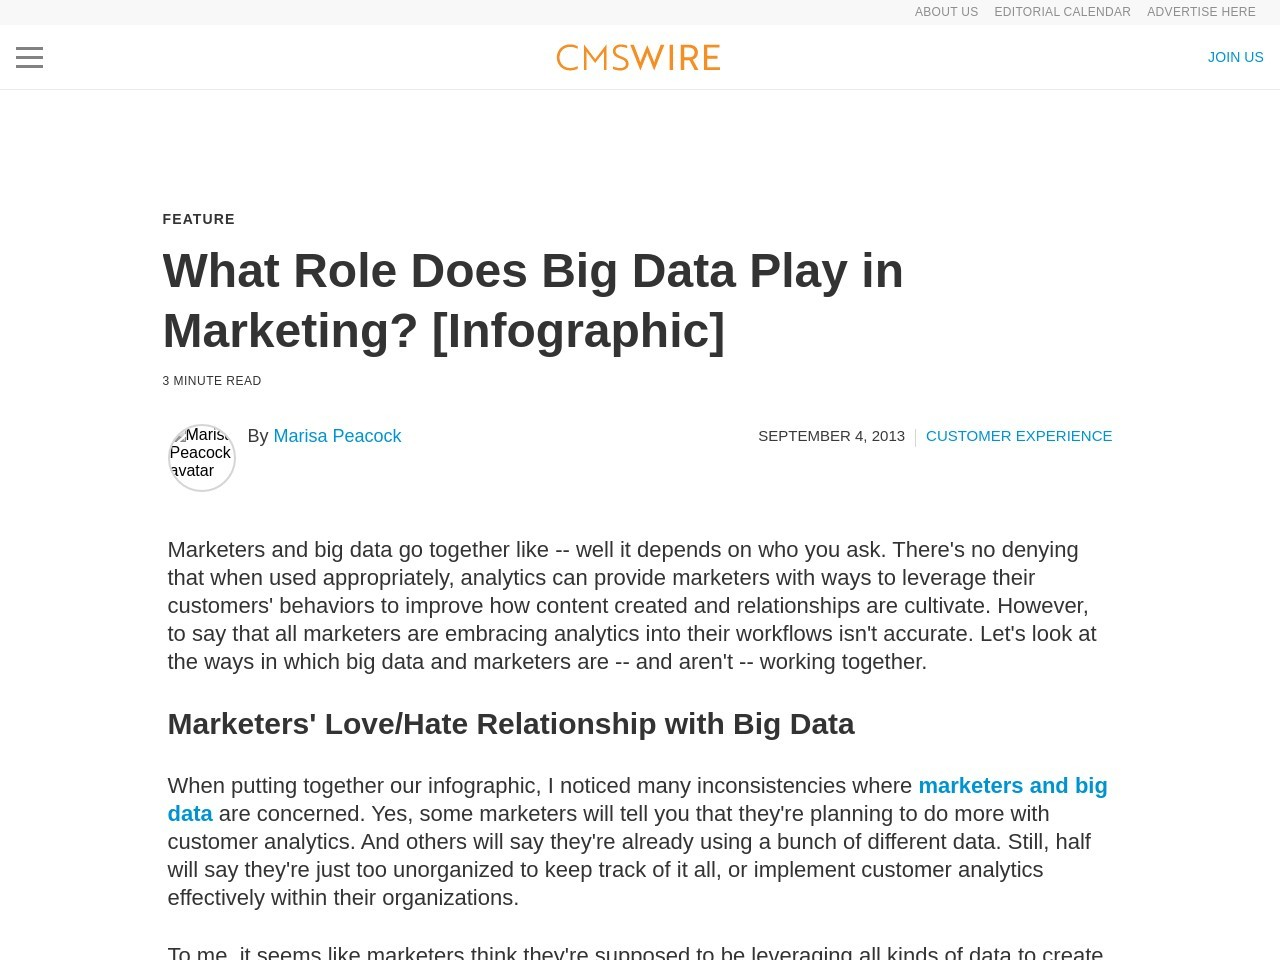 What Role Does Big Data Play in Marketing? [Infographic]